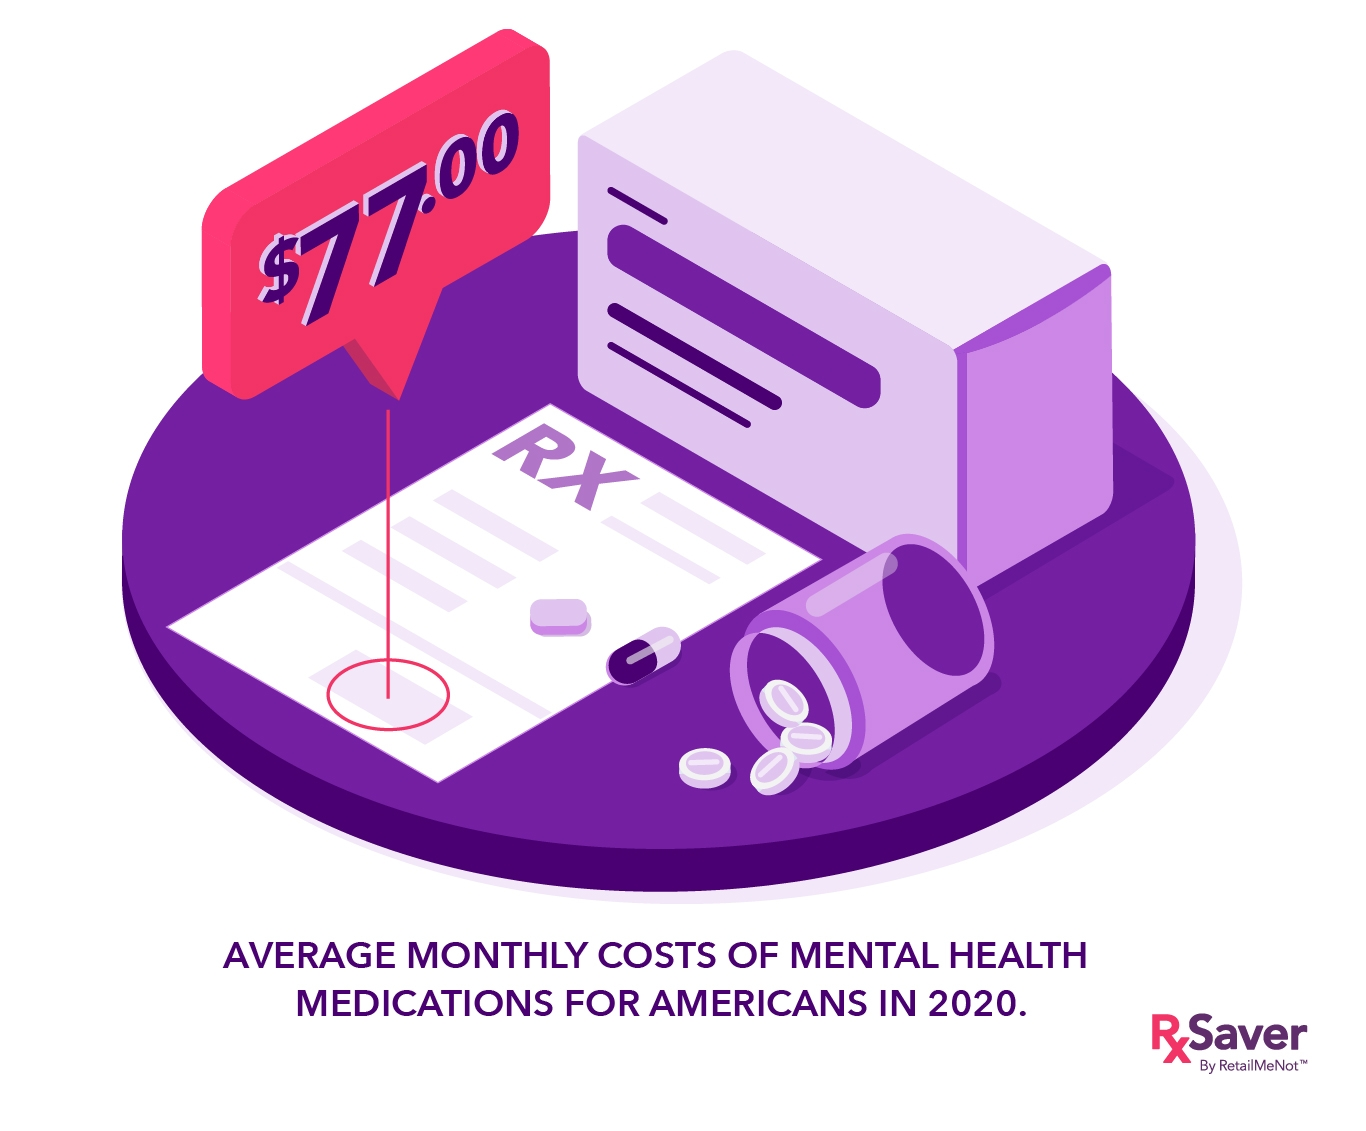 $77 is the average monthly cost of mental health medications in America